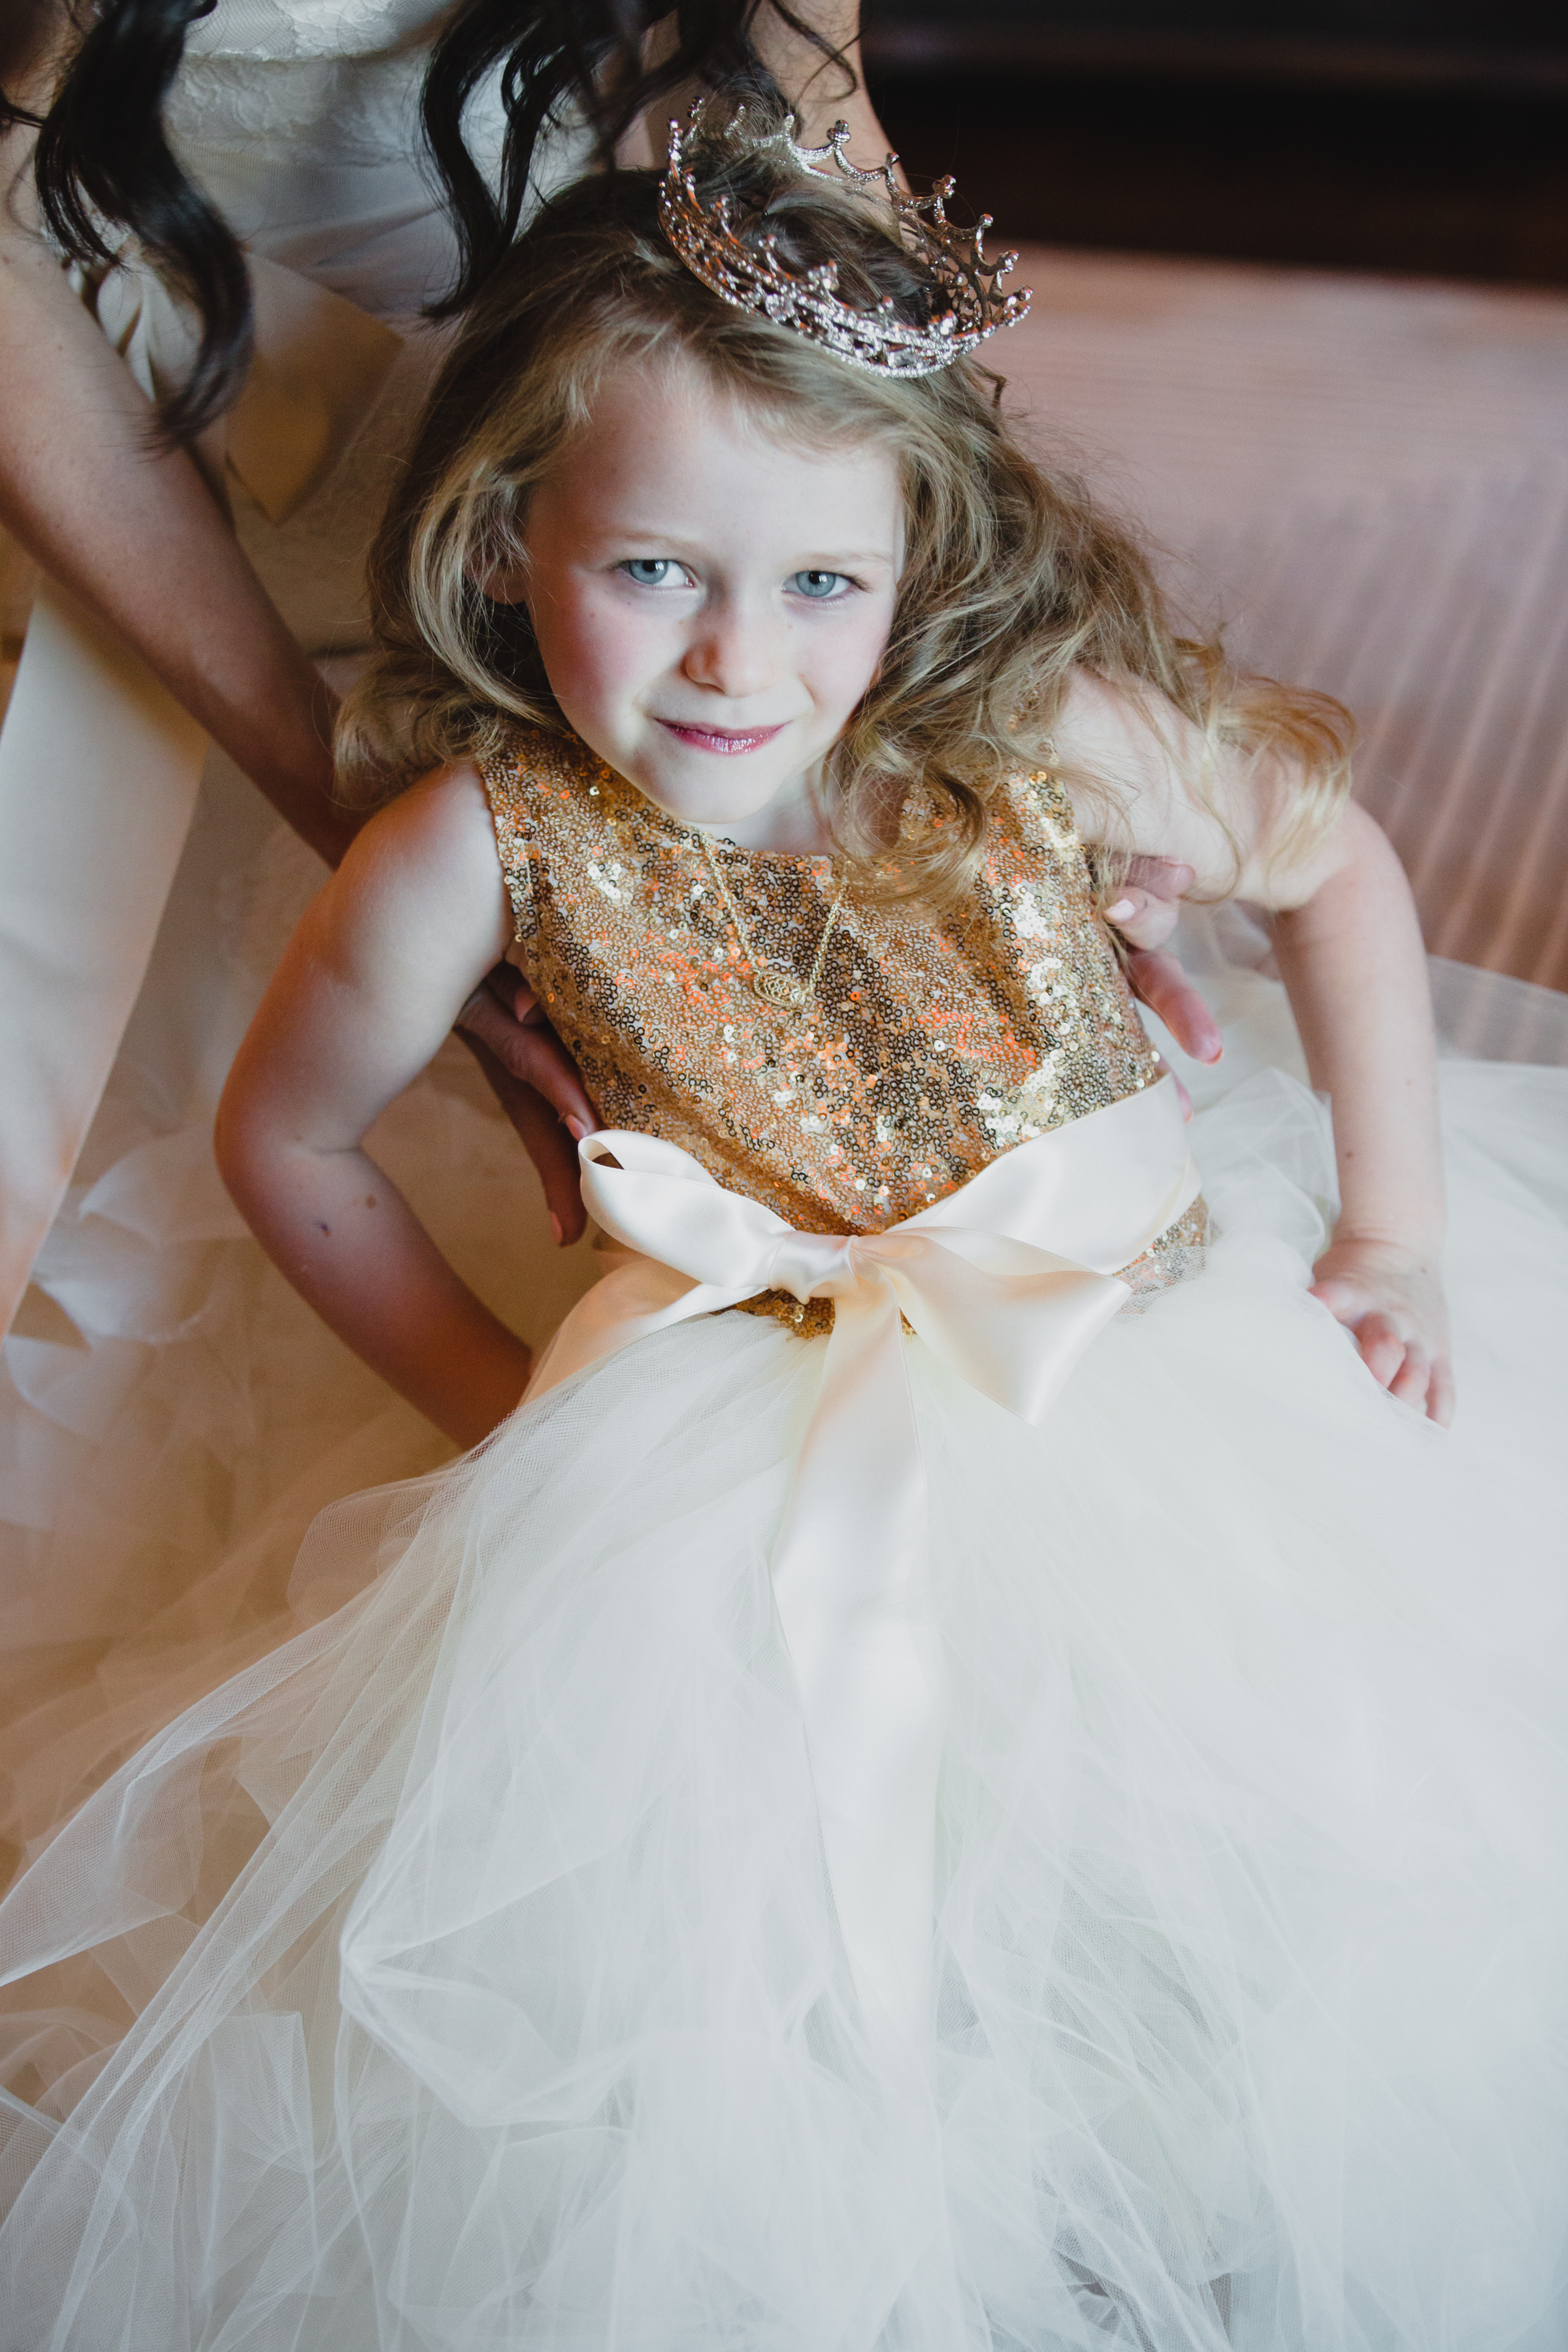 Princess crown on flower girl.Luxury wedding at the Mandarin Oriental with a color scheme of white, blush, and pops of wine red produced by Las Vegas Wedding Planner Andrea Eppolito with photos by Stephen Salazar Photography.